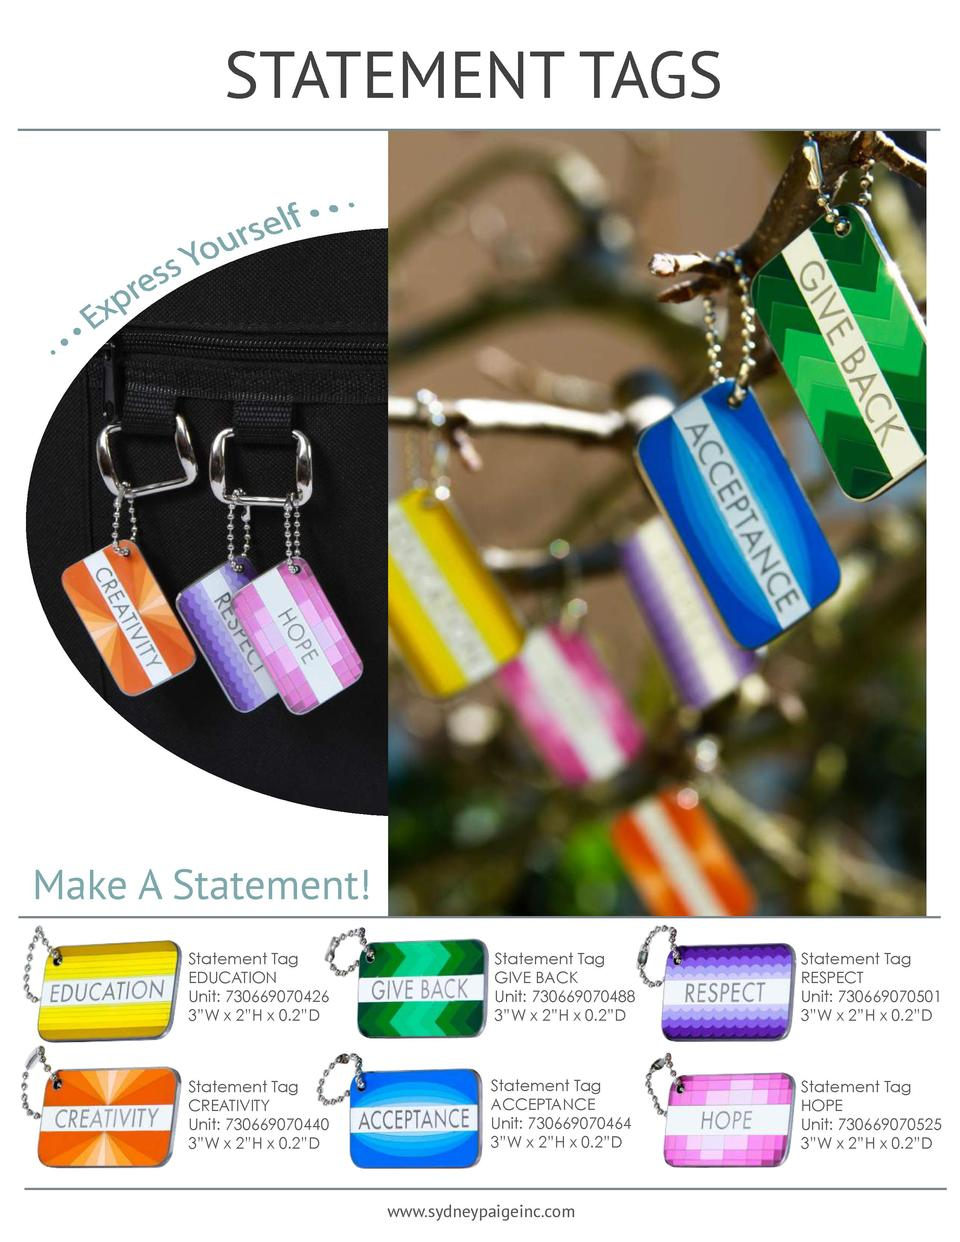 STATEMENT TAGS  Make A Statement  Statement Tag EDUCATION Unit  730669070426 3   W x 2   H x 0.2   D  Statement Tag GIVE B...